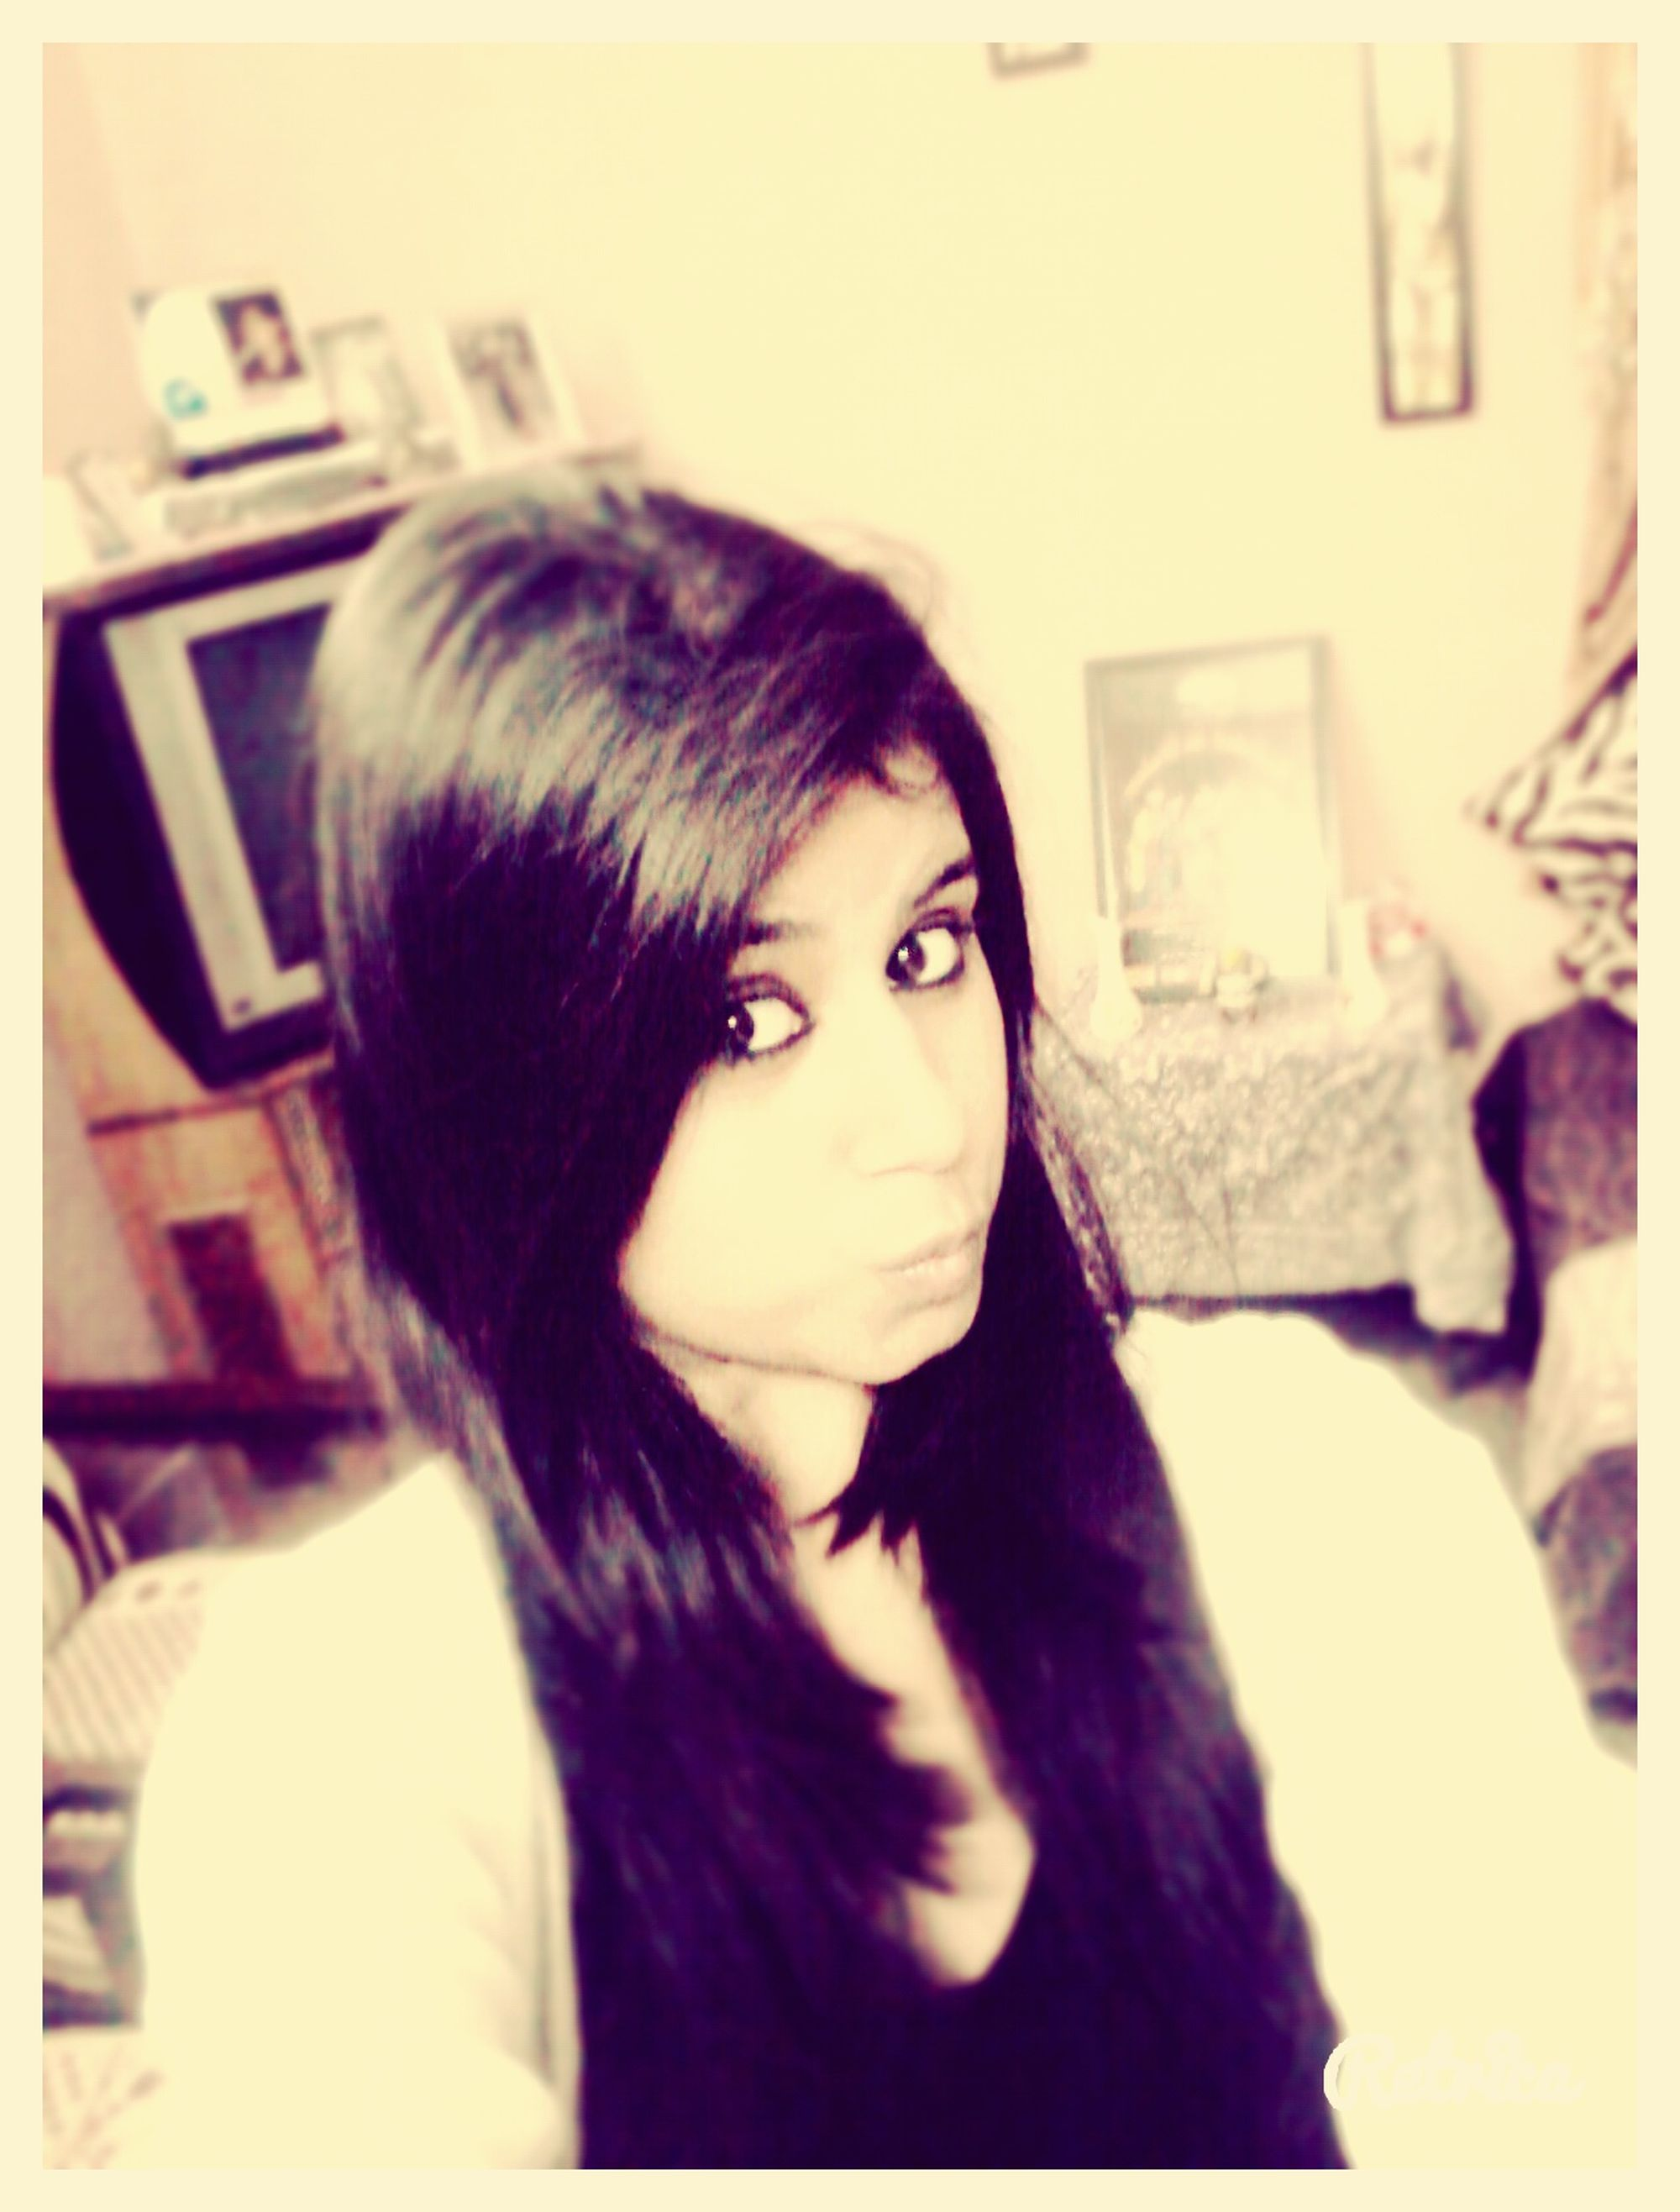 Sexiee♥ Straight Hairs Follow4follow Beauty Eyes Todays Outfit♥...hotlook.★★♥♥♥ :*:*:*:* Selfie ✌ Kissing Pouth Kisses ♥ Check Me Out